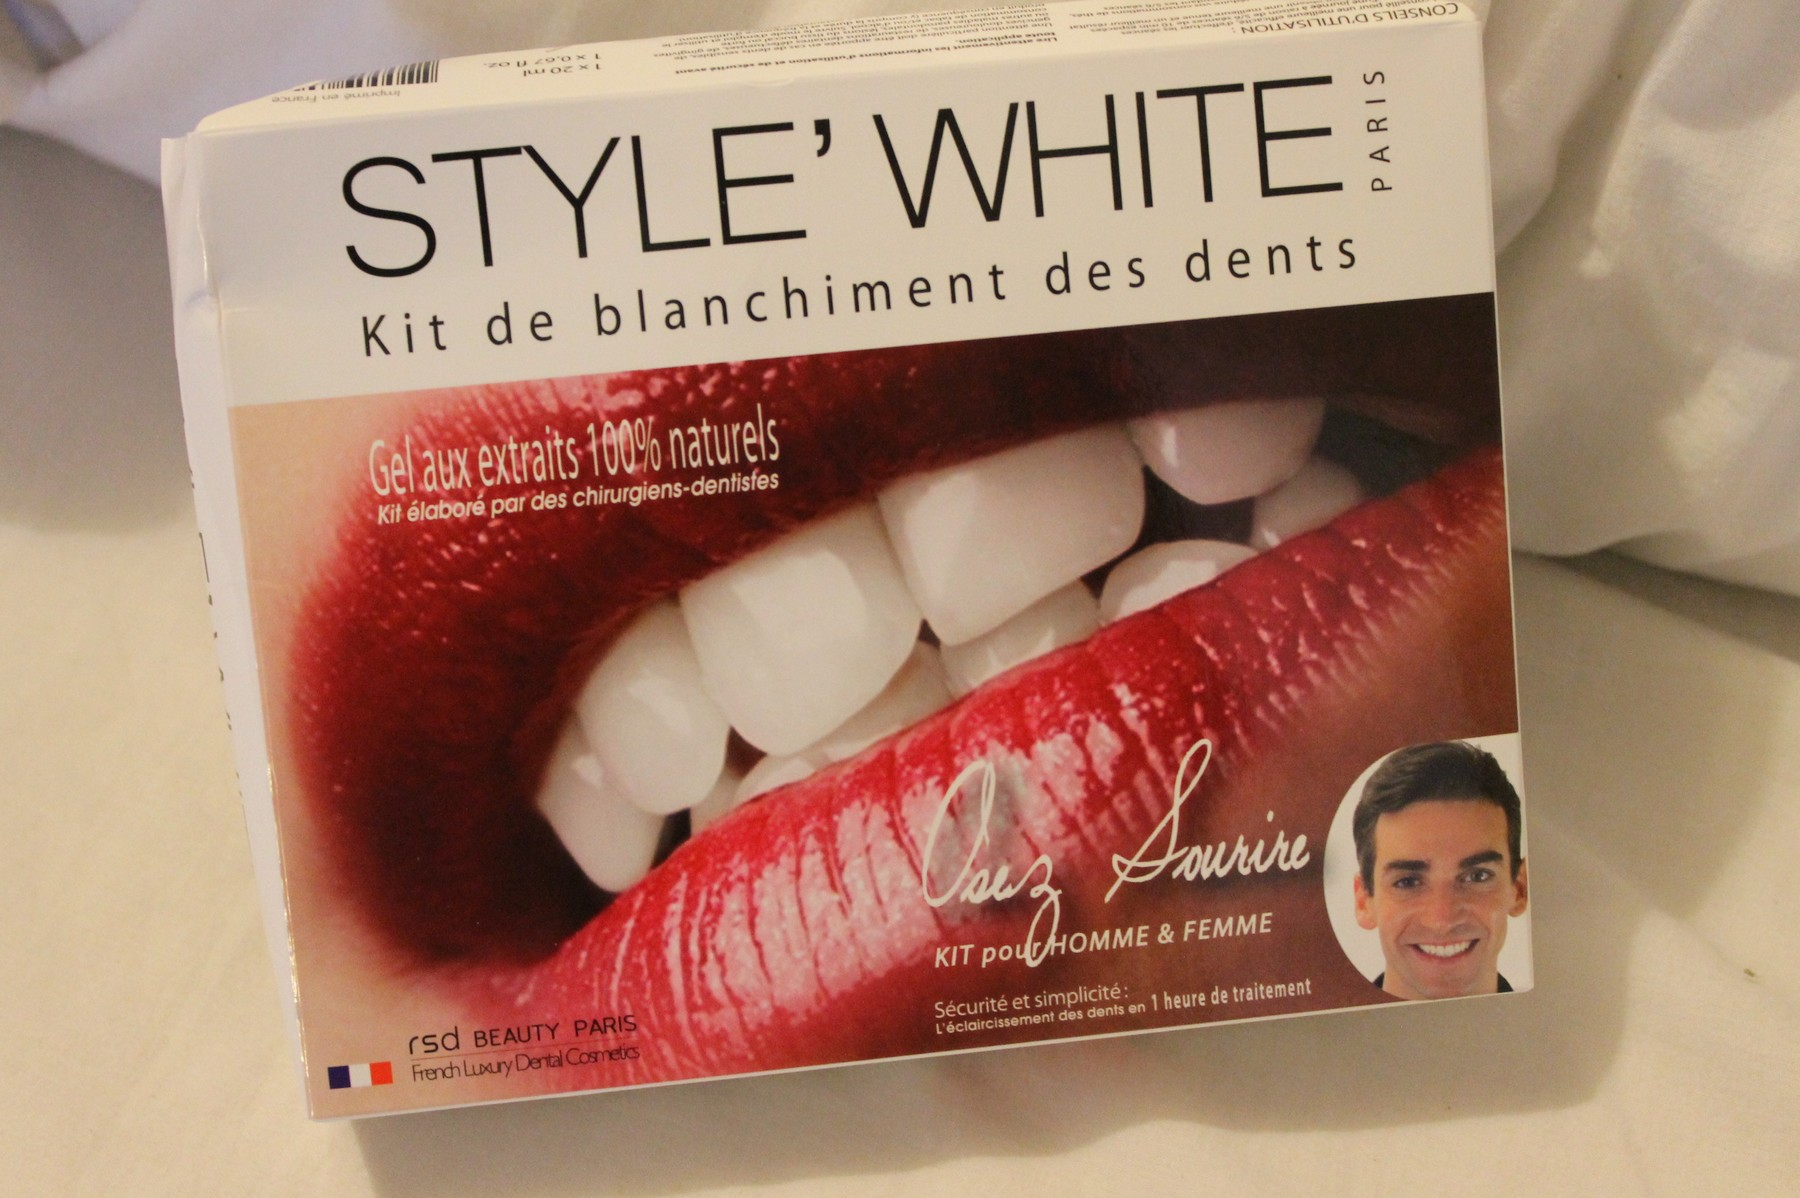 Dents En Porcelaine Initials Cb Se Faire Blanchir Les Dents Initials Cb